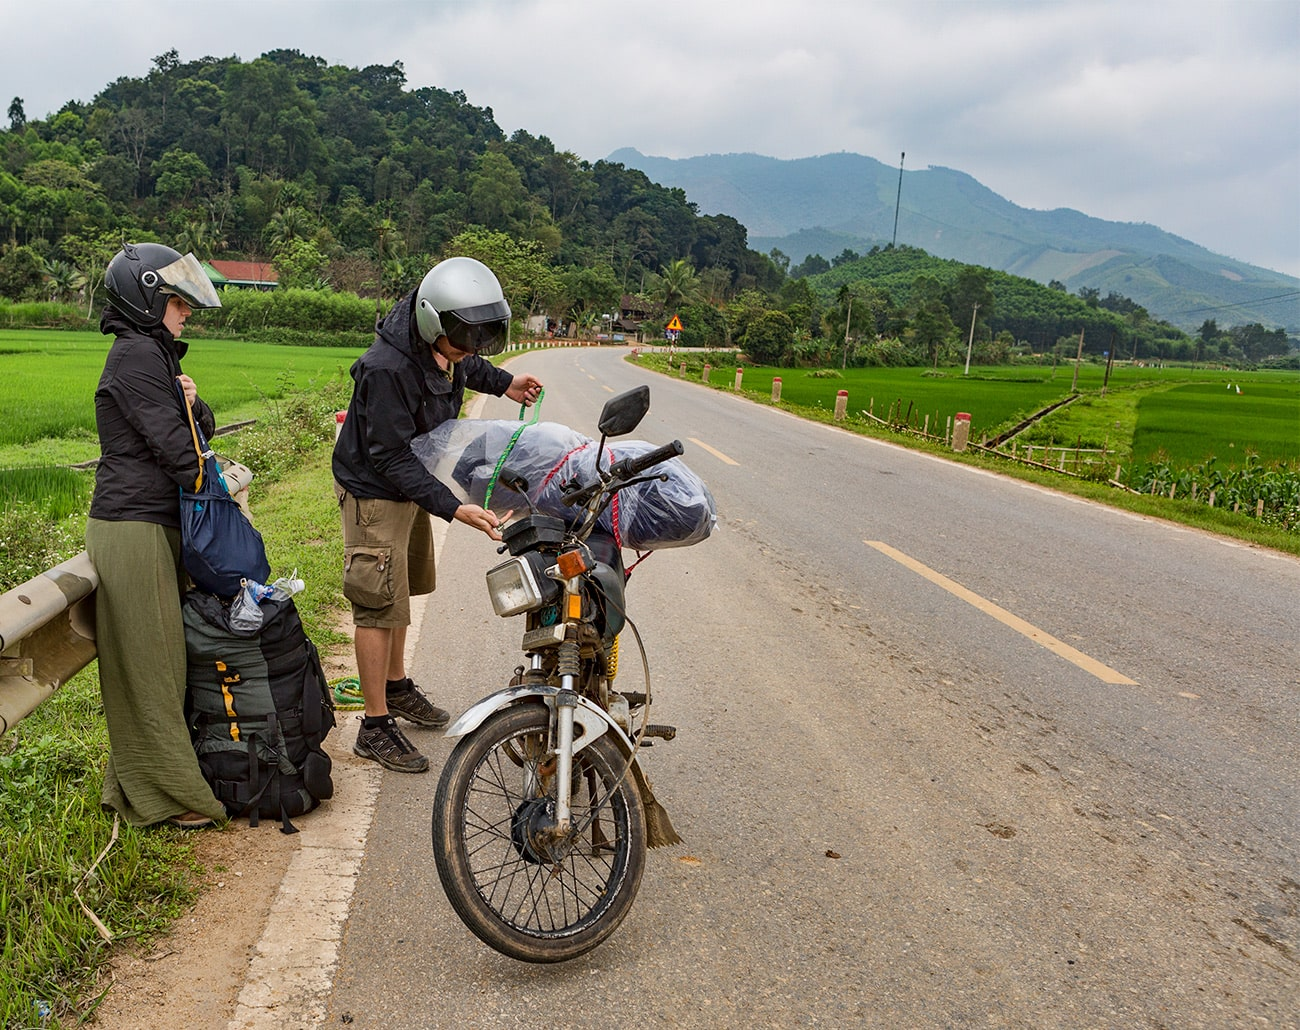 From Phố Châu to Pom Coong Village